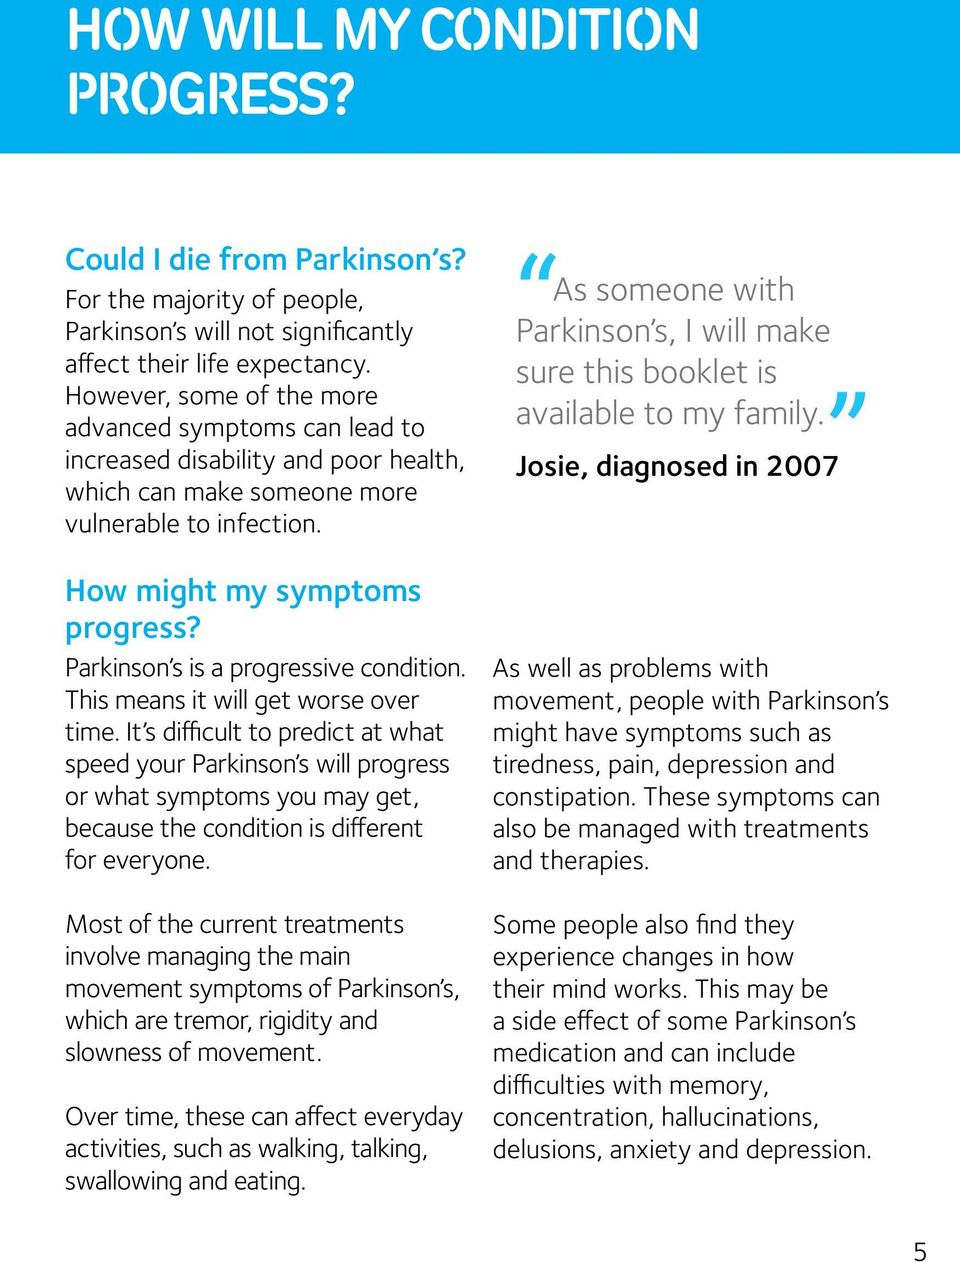 Parkinson s is a progressive condition. This means it will get worse over time.